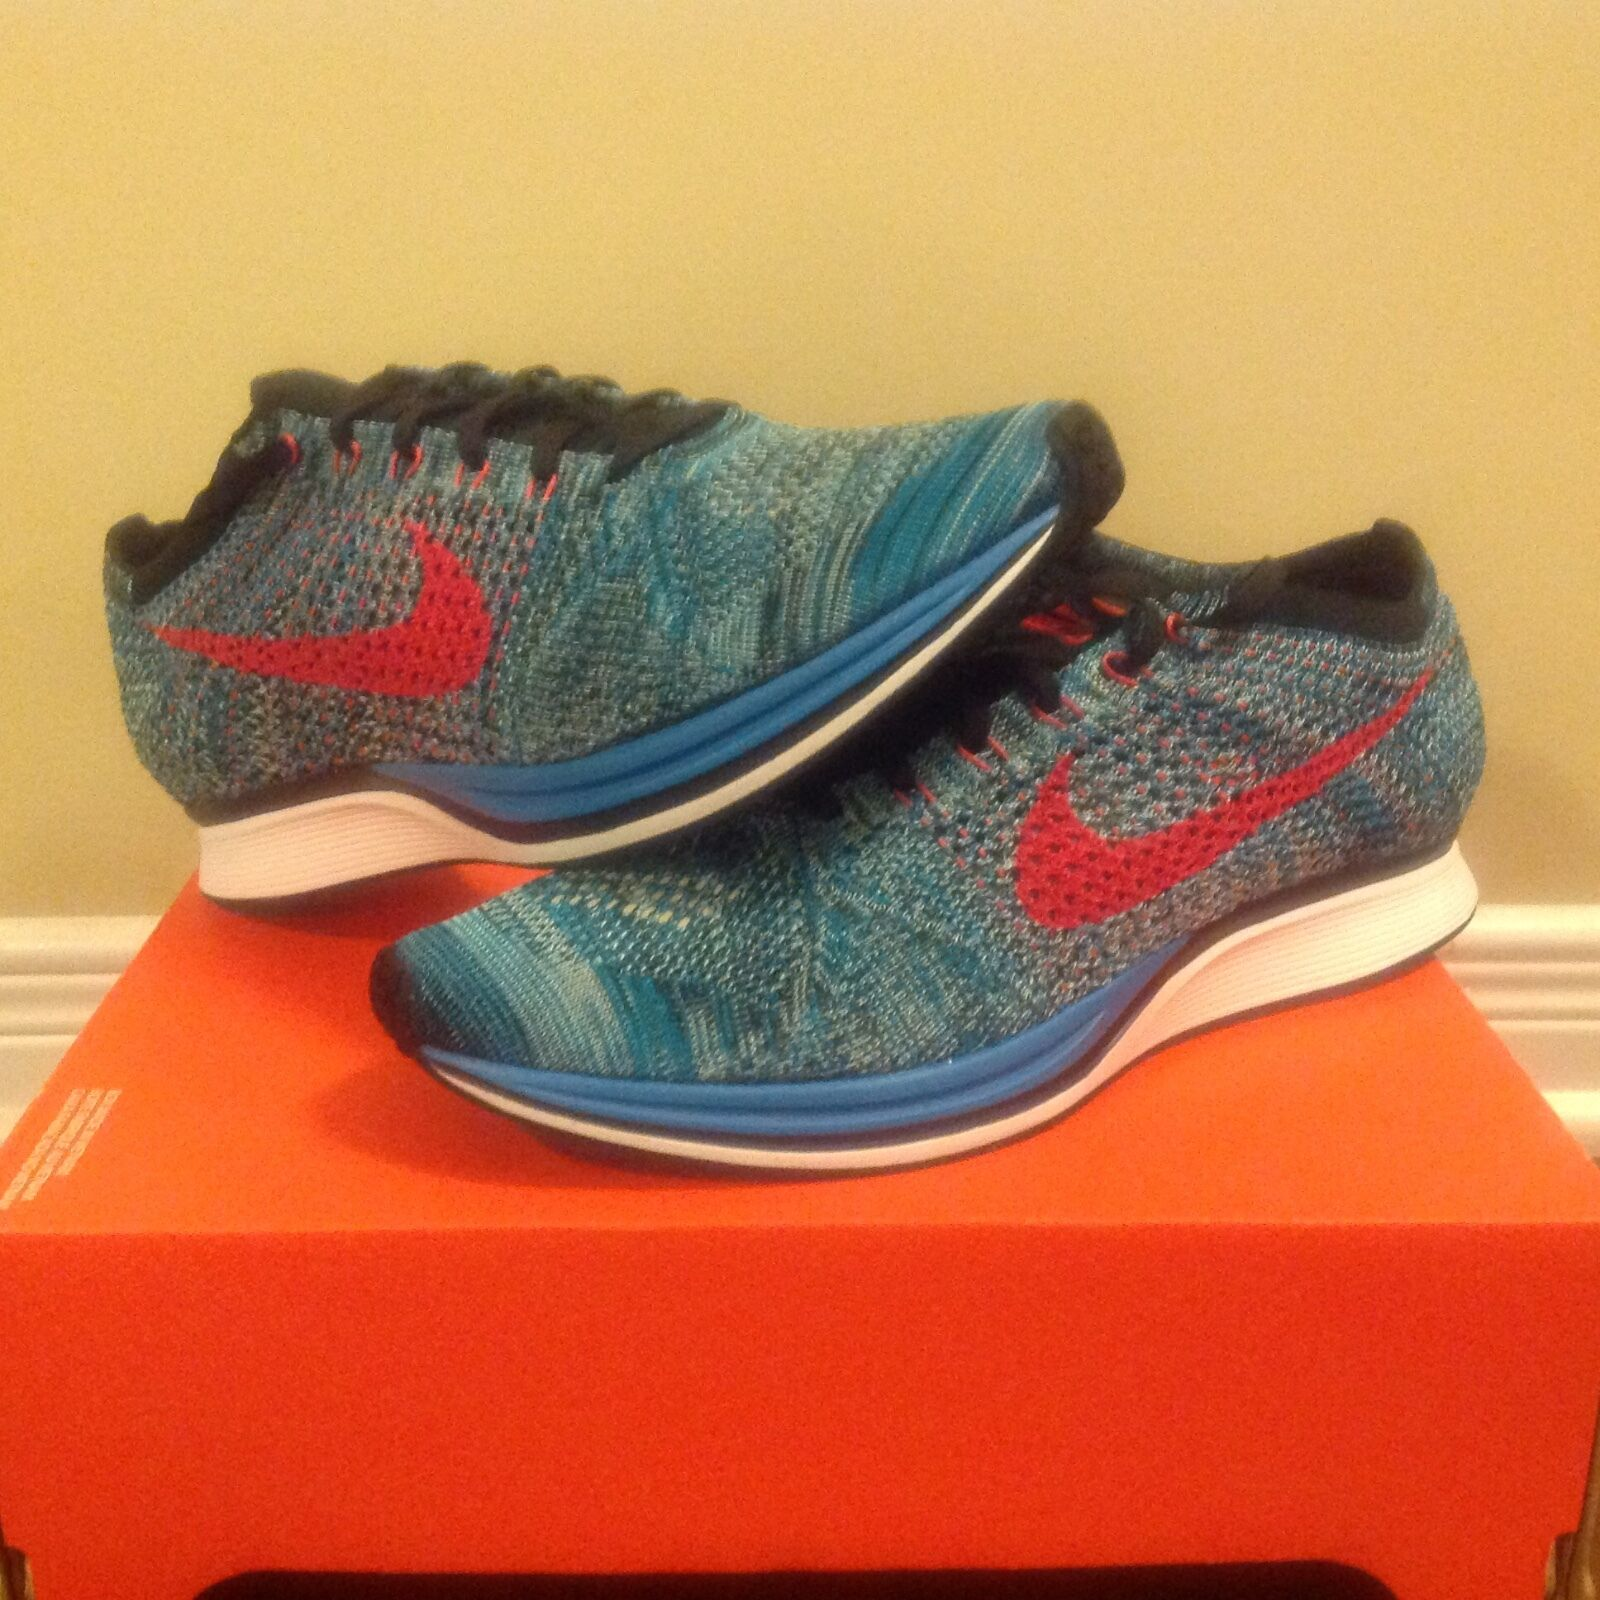 Nike Flyknit Racer Neo Turquoise, Sz 13, DS, 100% Authentic, [526628-404]